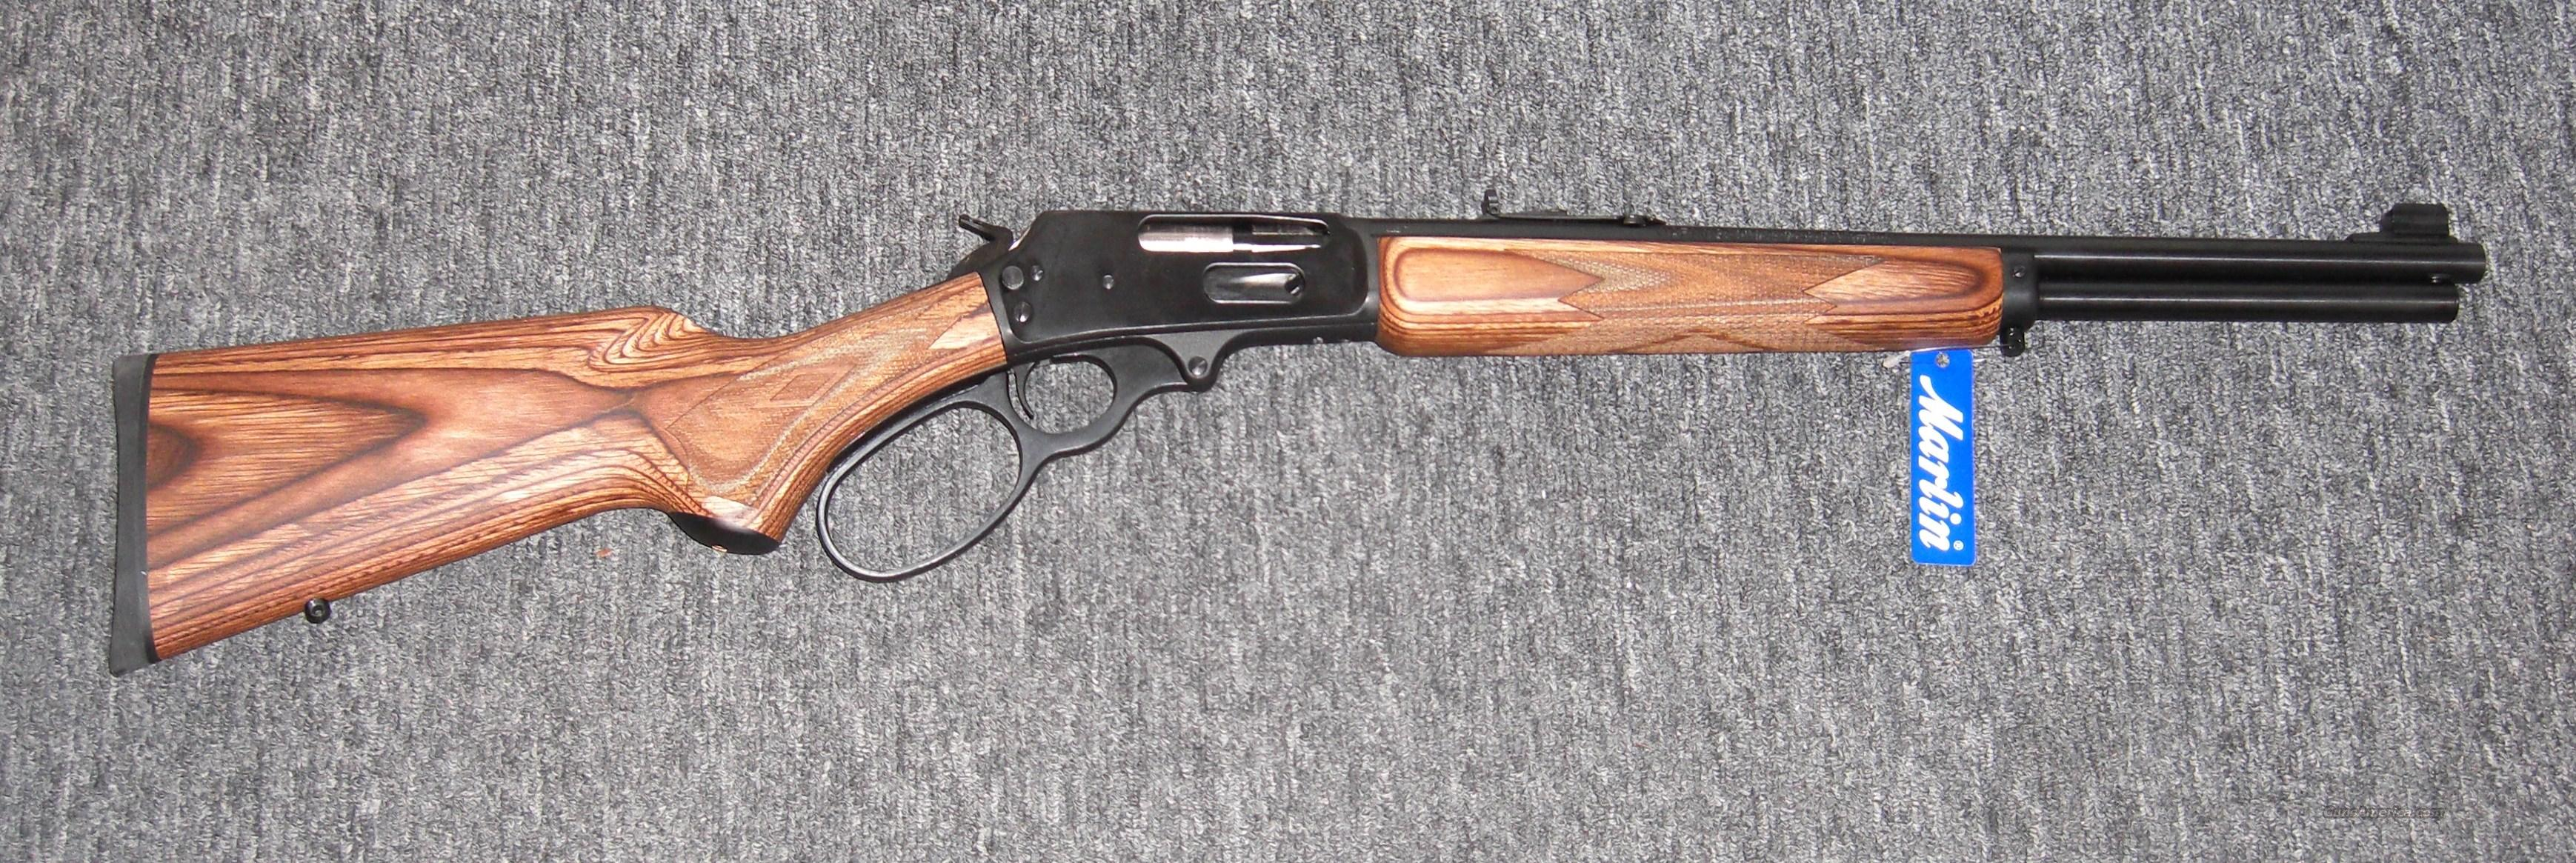 336 BL (.30-30)  Guns > Rifles > Marlin Rifles > Modern > Lever Action